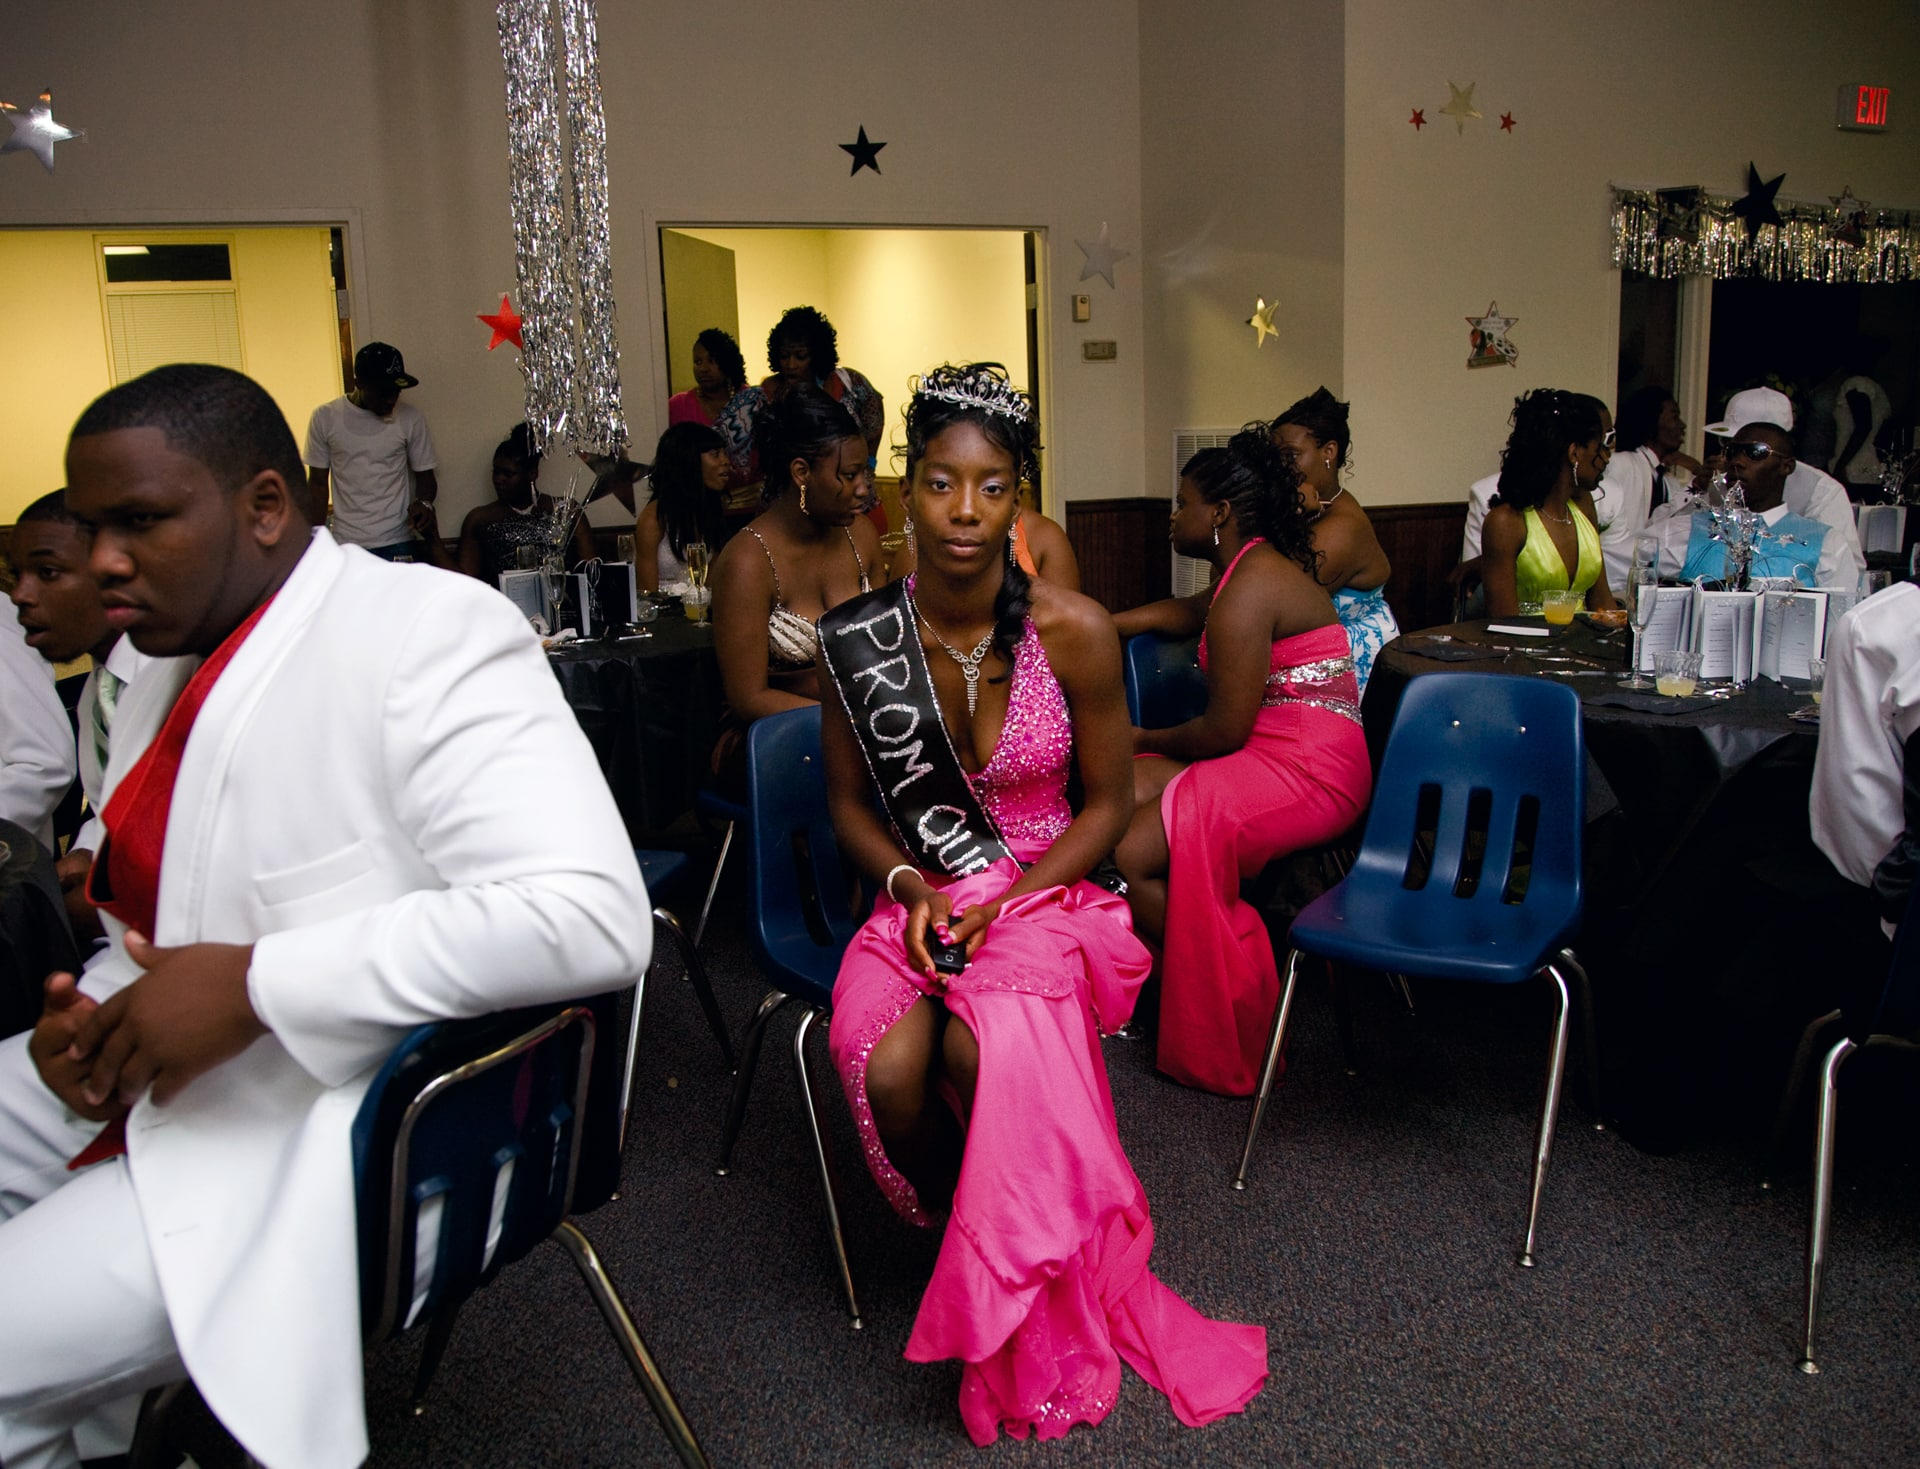 VIDALIA, GEORGIA – MAY 2009: Niesha, the prom queen on May 2,